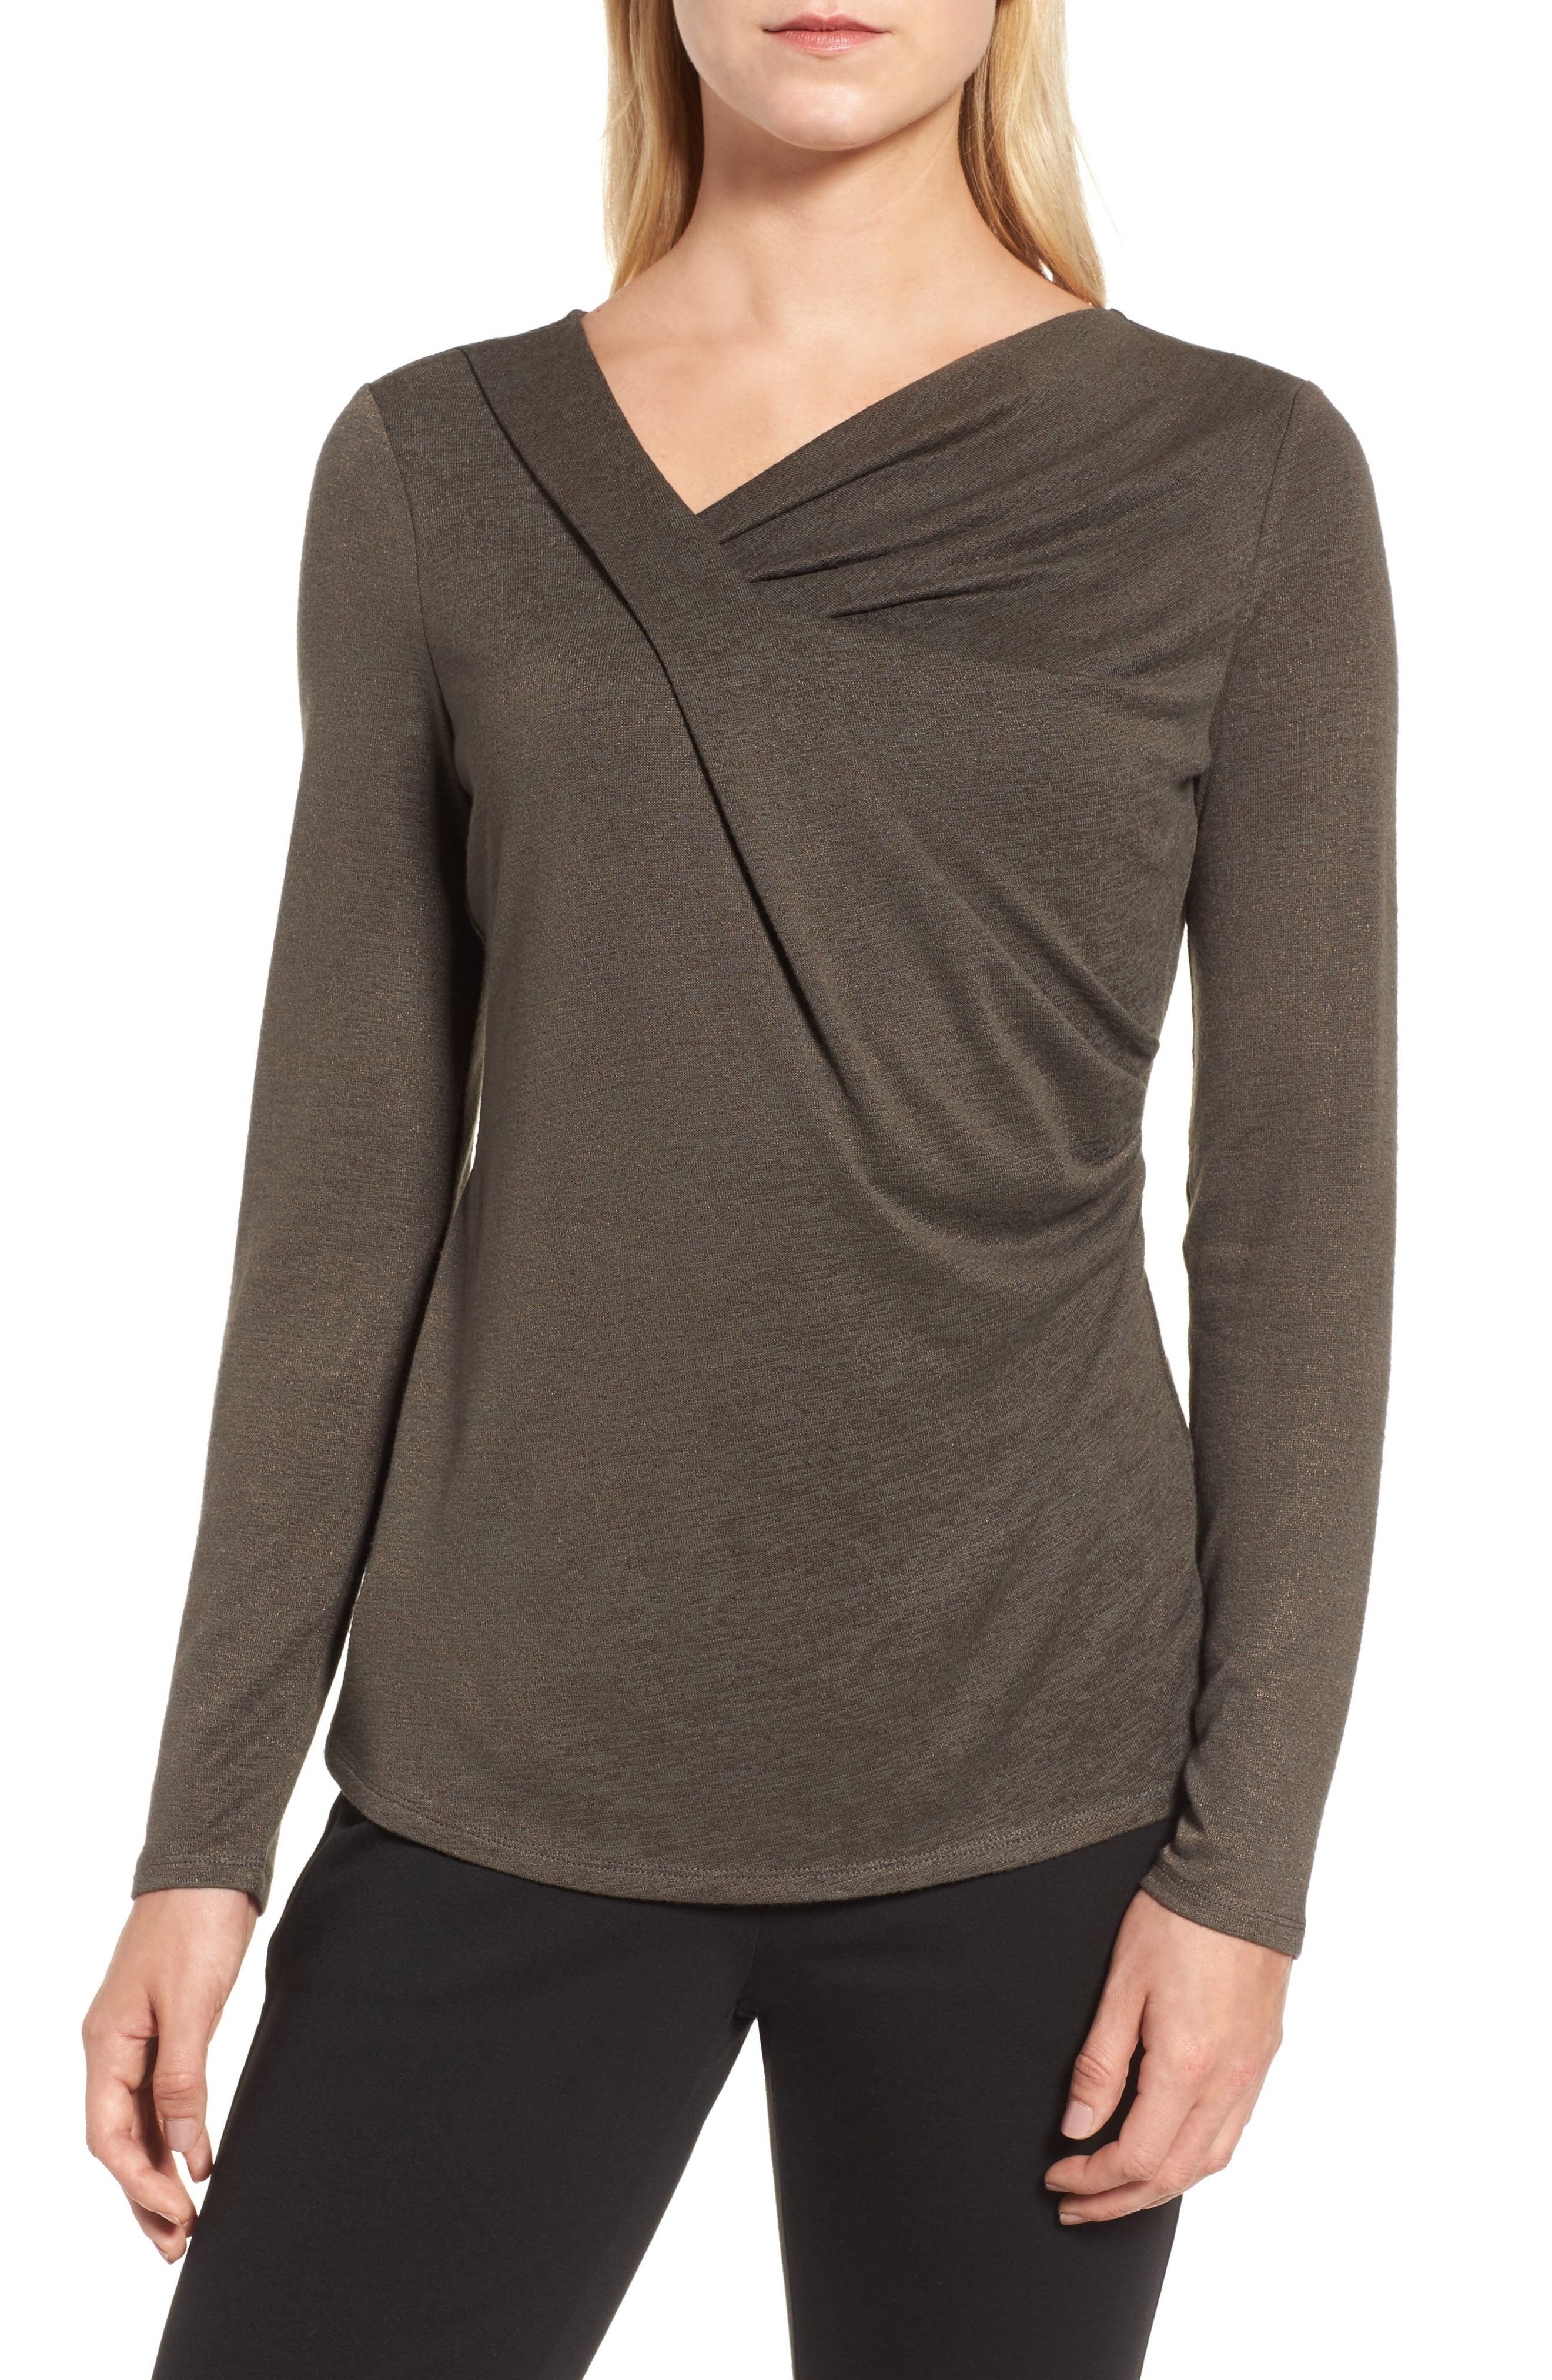 Every Occasion Drape Top,                             Main thumbnail 3, color,